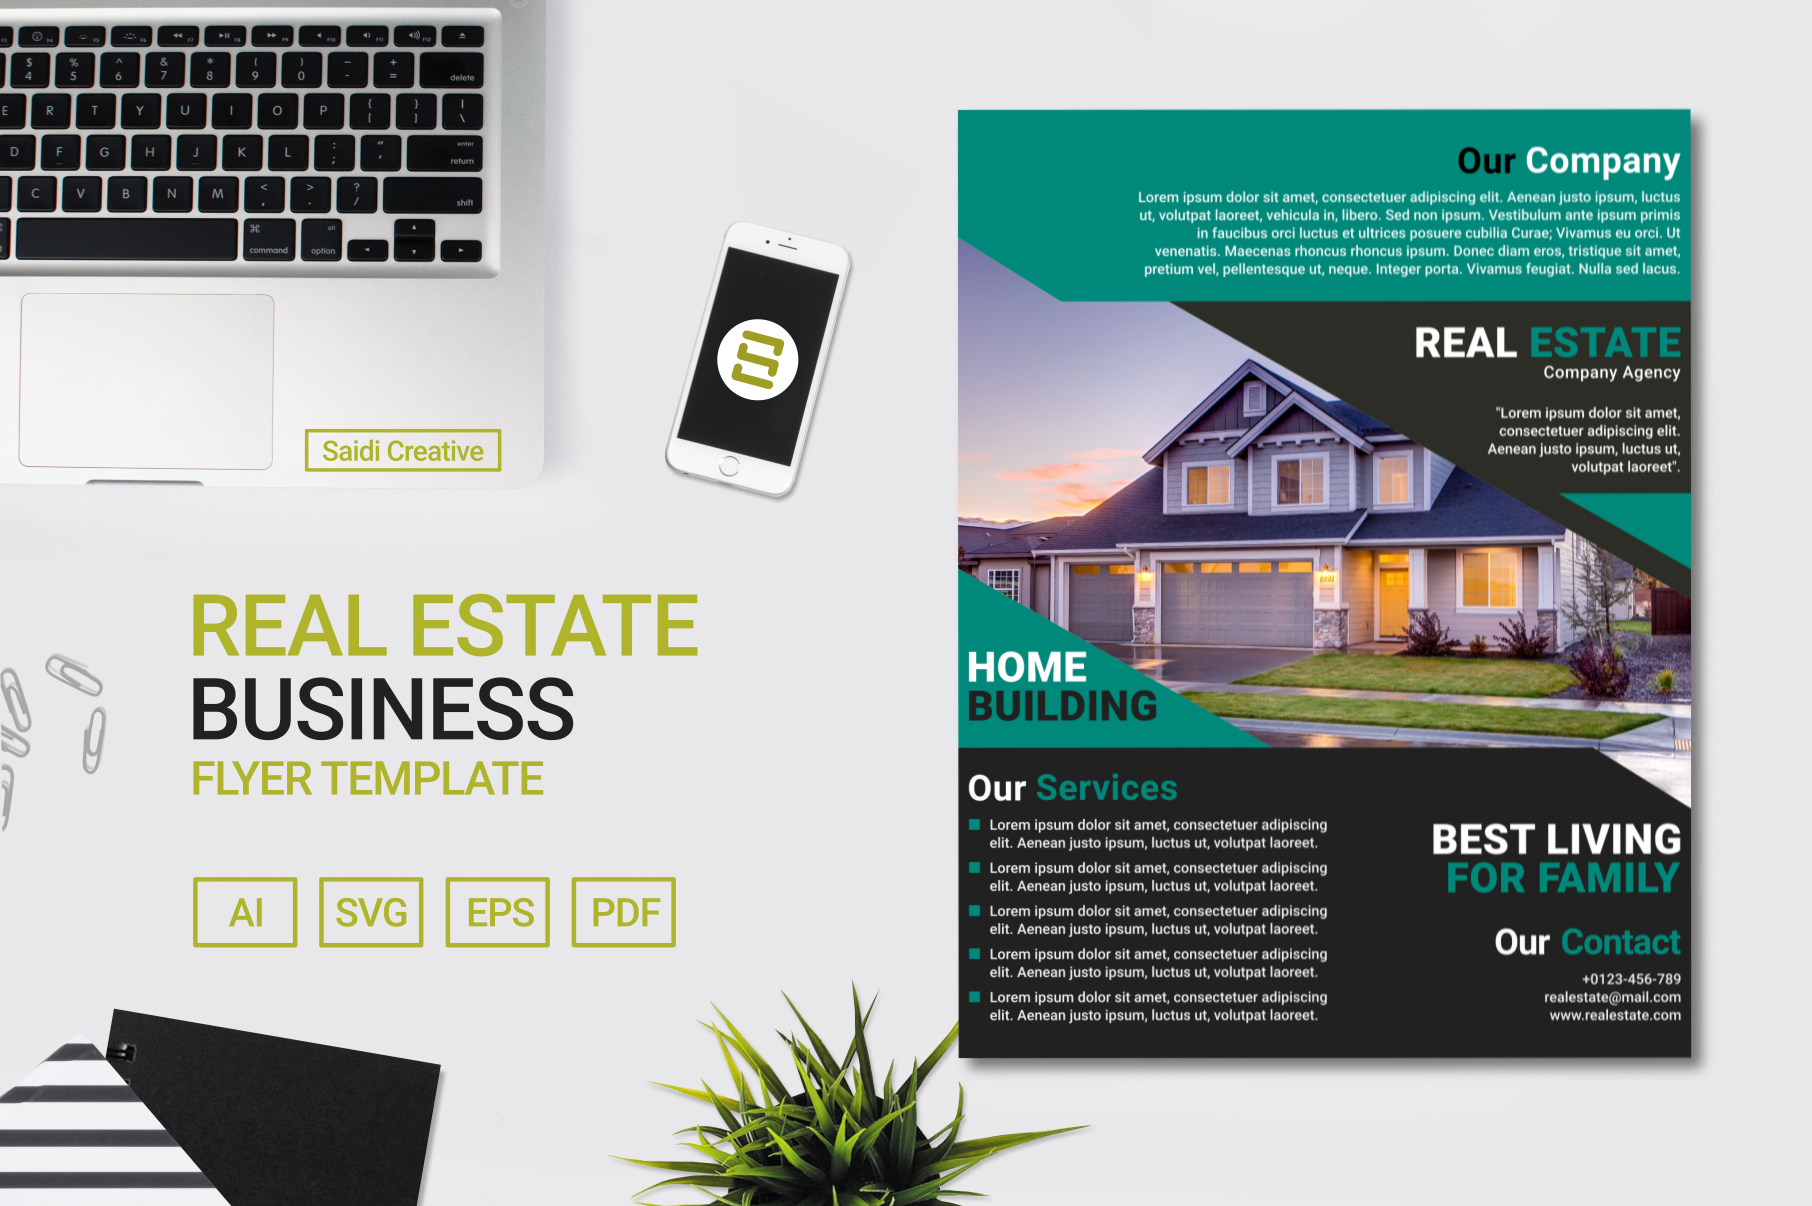 Real Estate Business Flyer Template Design Us Flyer Size